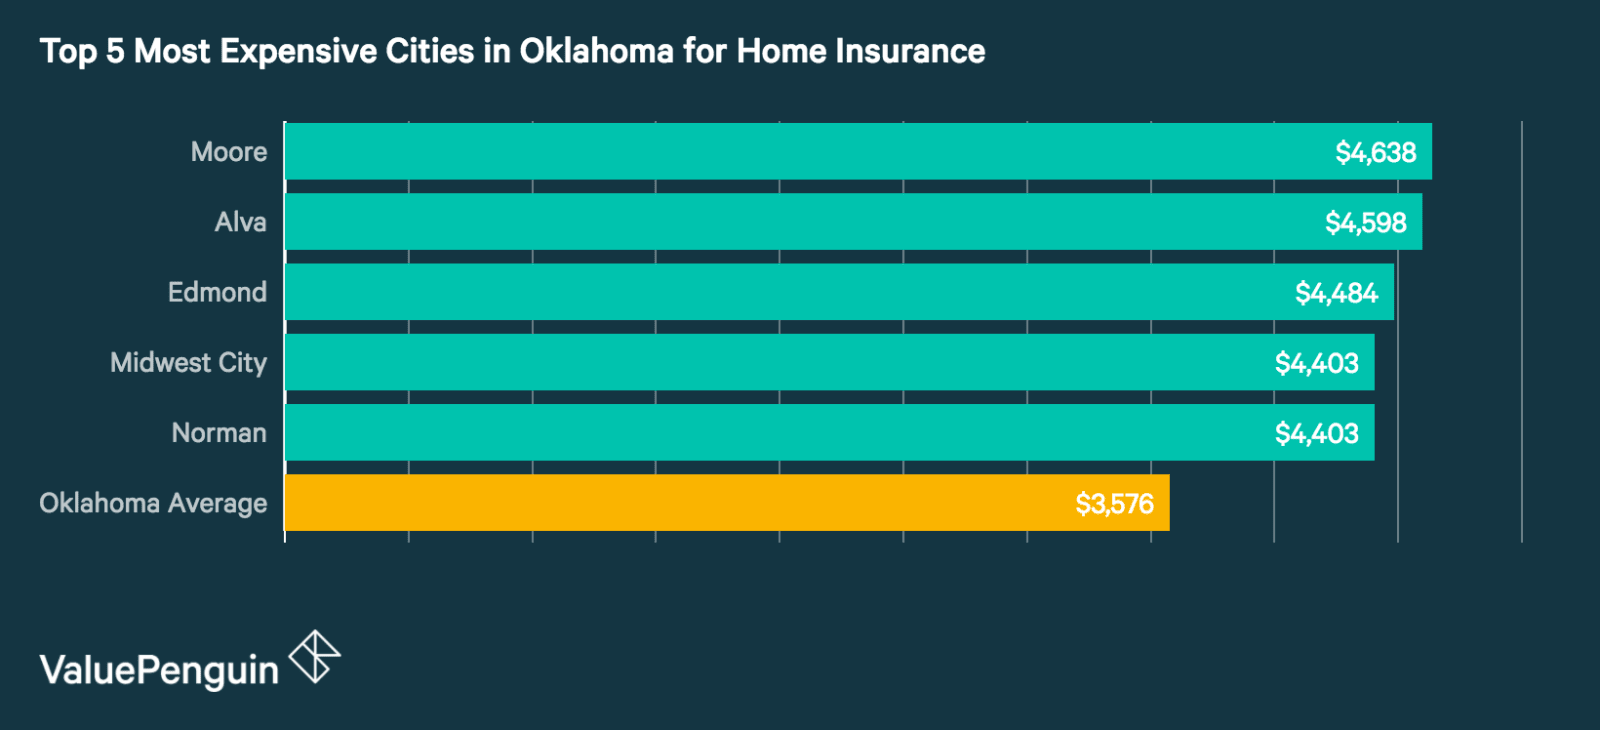 Top 5 Most Expensive Cities in Oklahoma for Homeowners Insurance